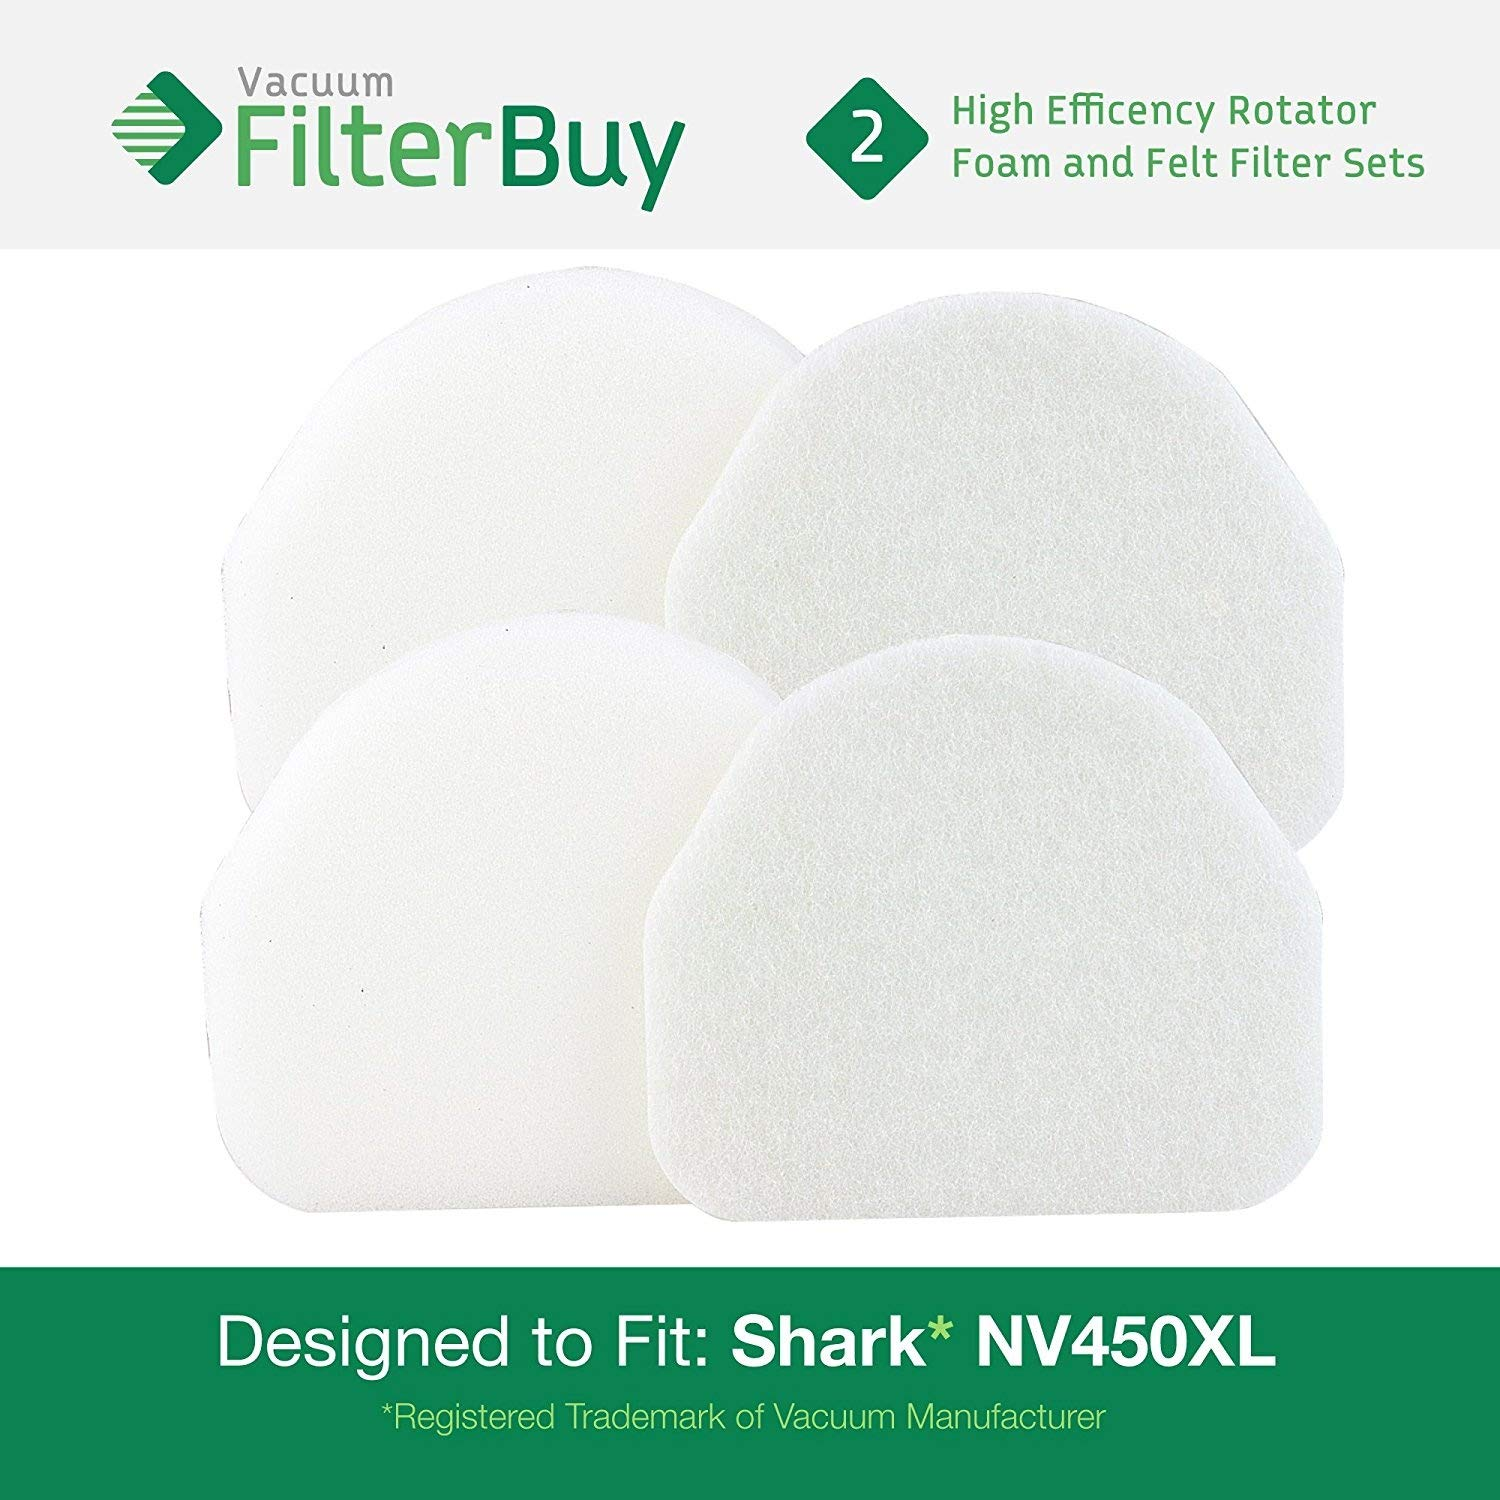 Shark NV480 /& NV450 Foam /& Felt Filter Kits FilterBuy 2 Part #XFF450 Designed to fit Shark Rocket Pro NV480 /& Shark Rotator Powerlight NV450 Upright Vacuums